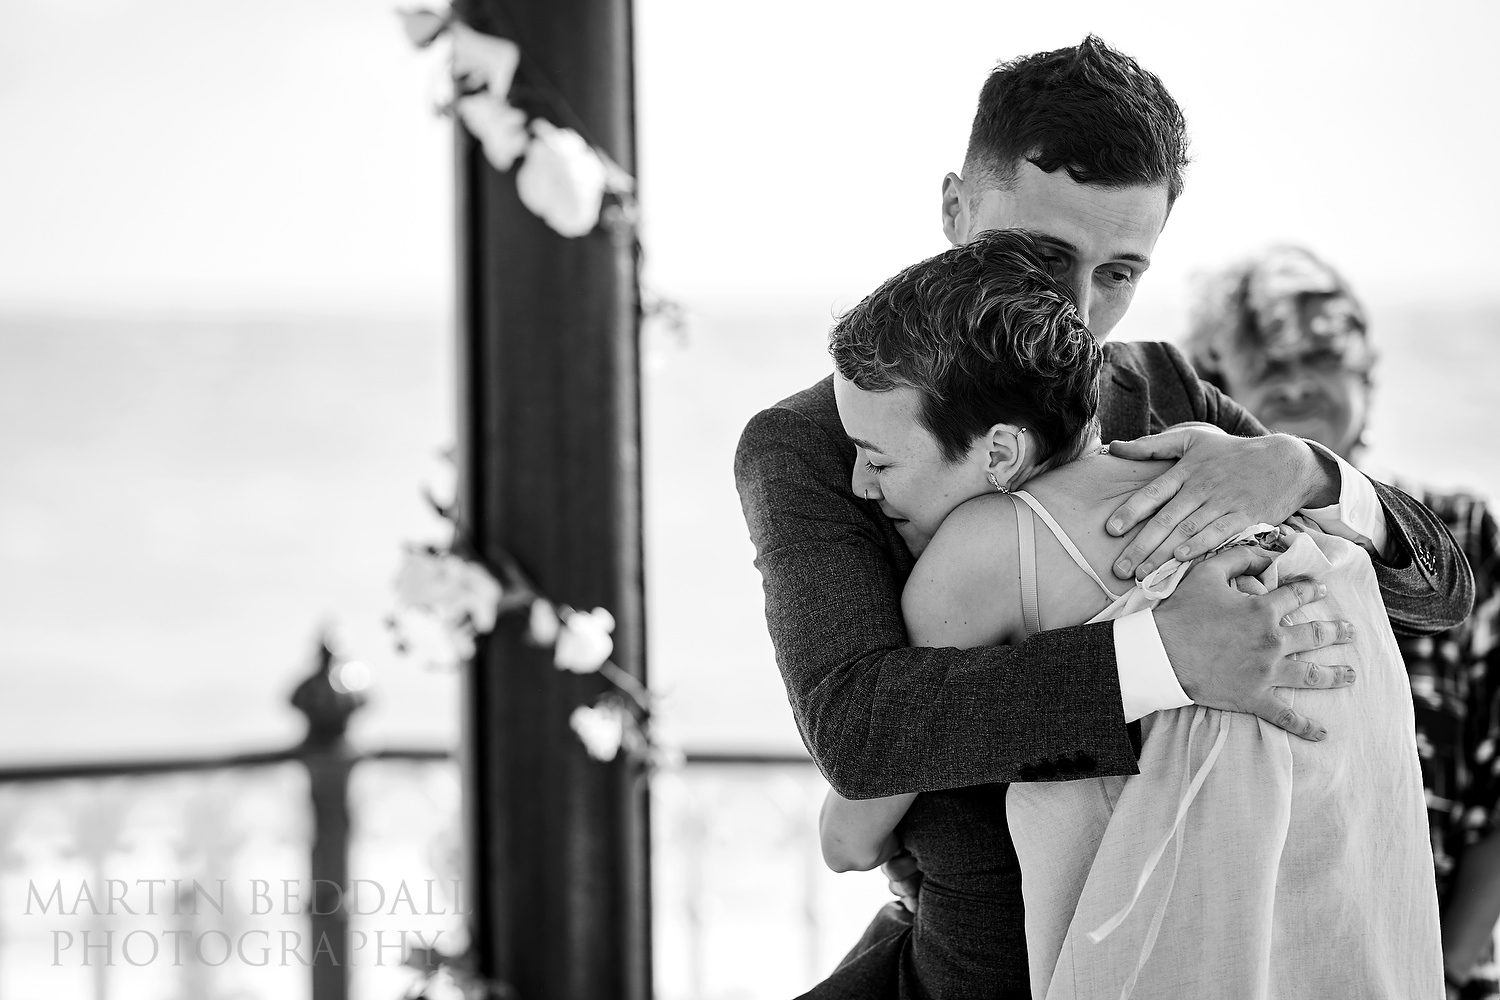 Grooms hugs the bride after her vows